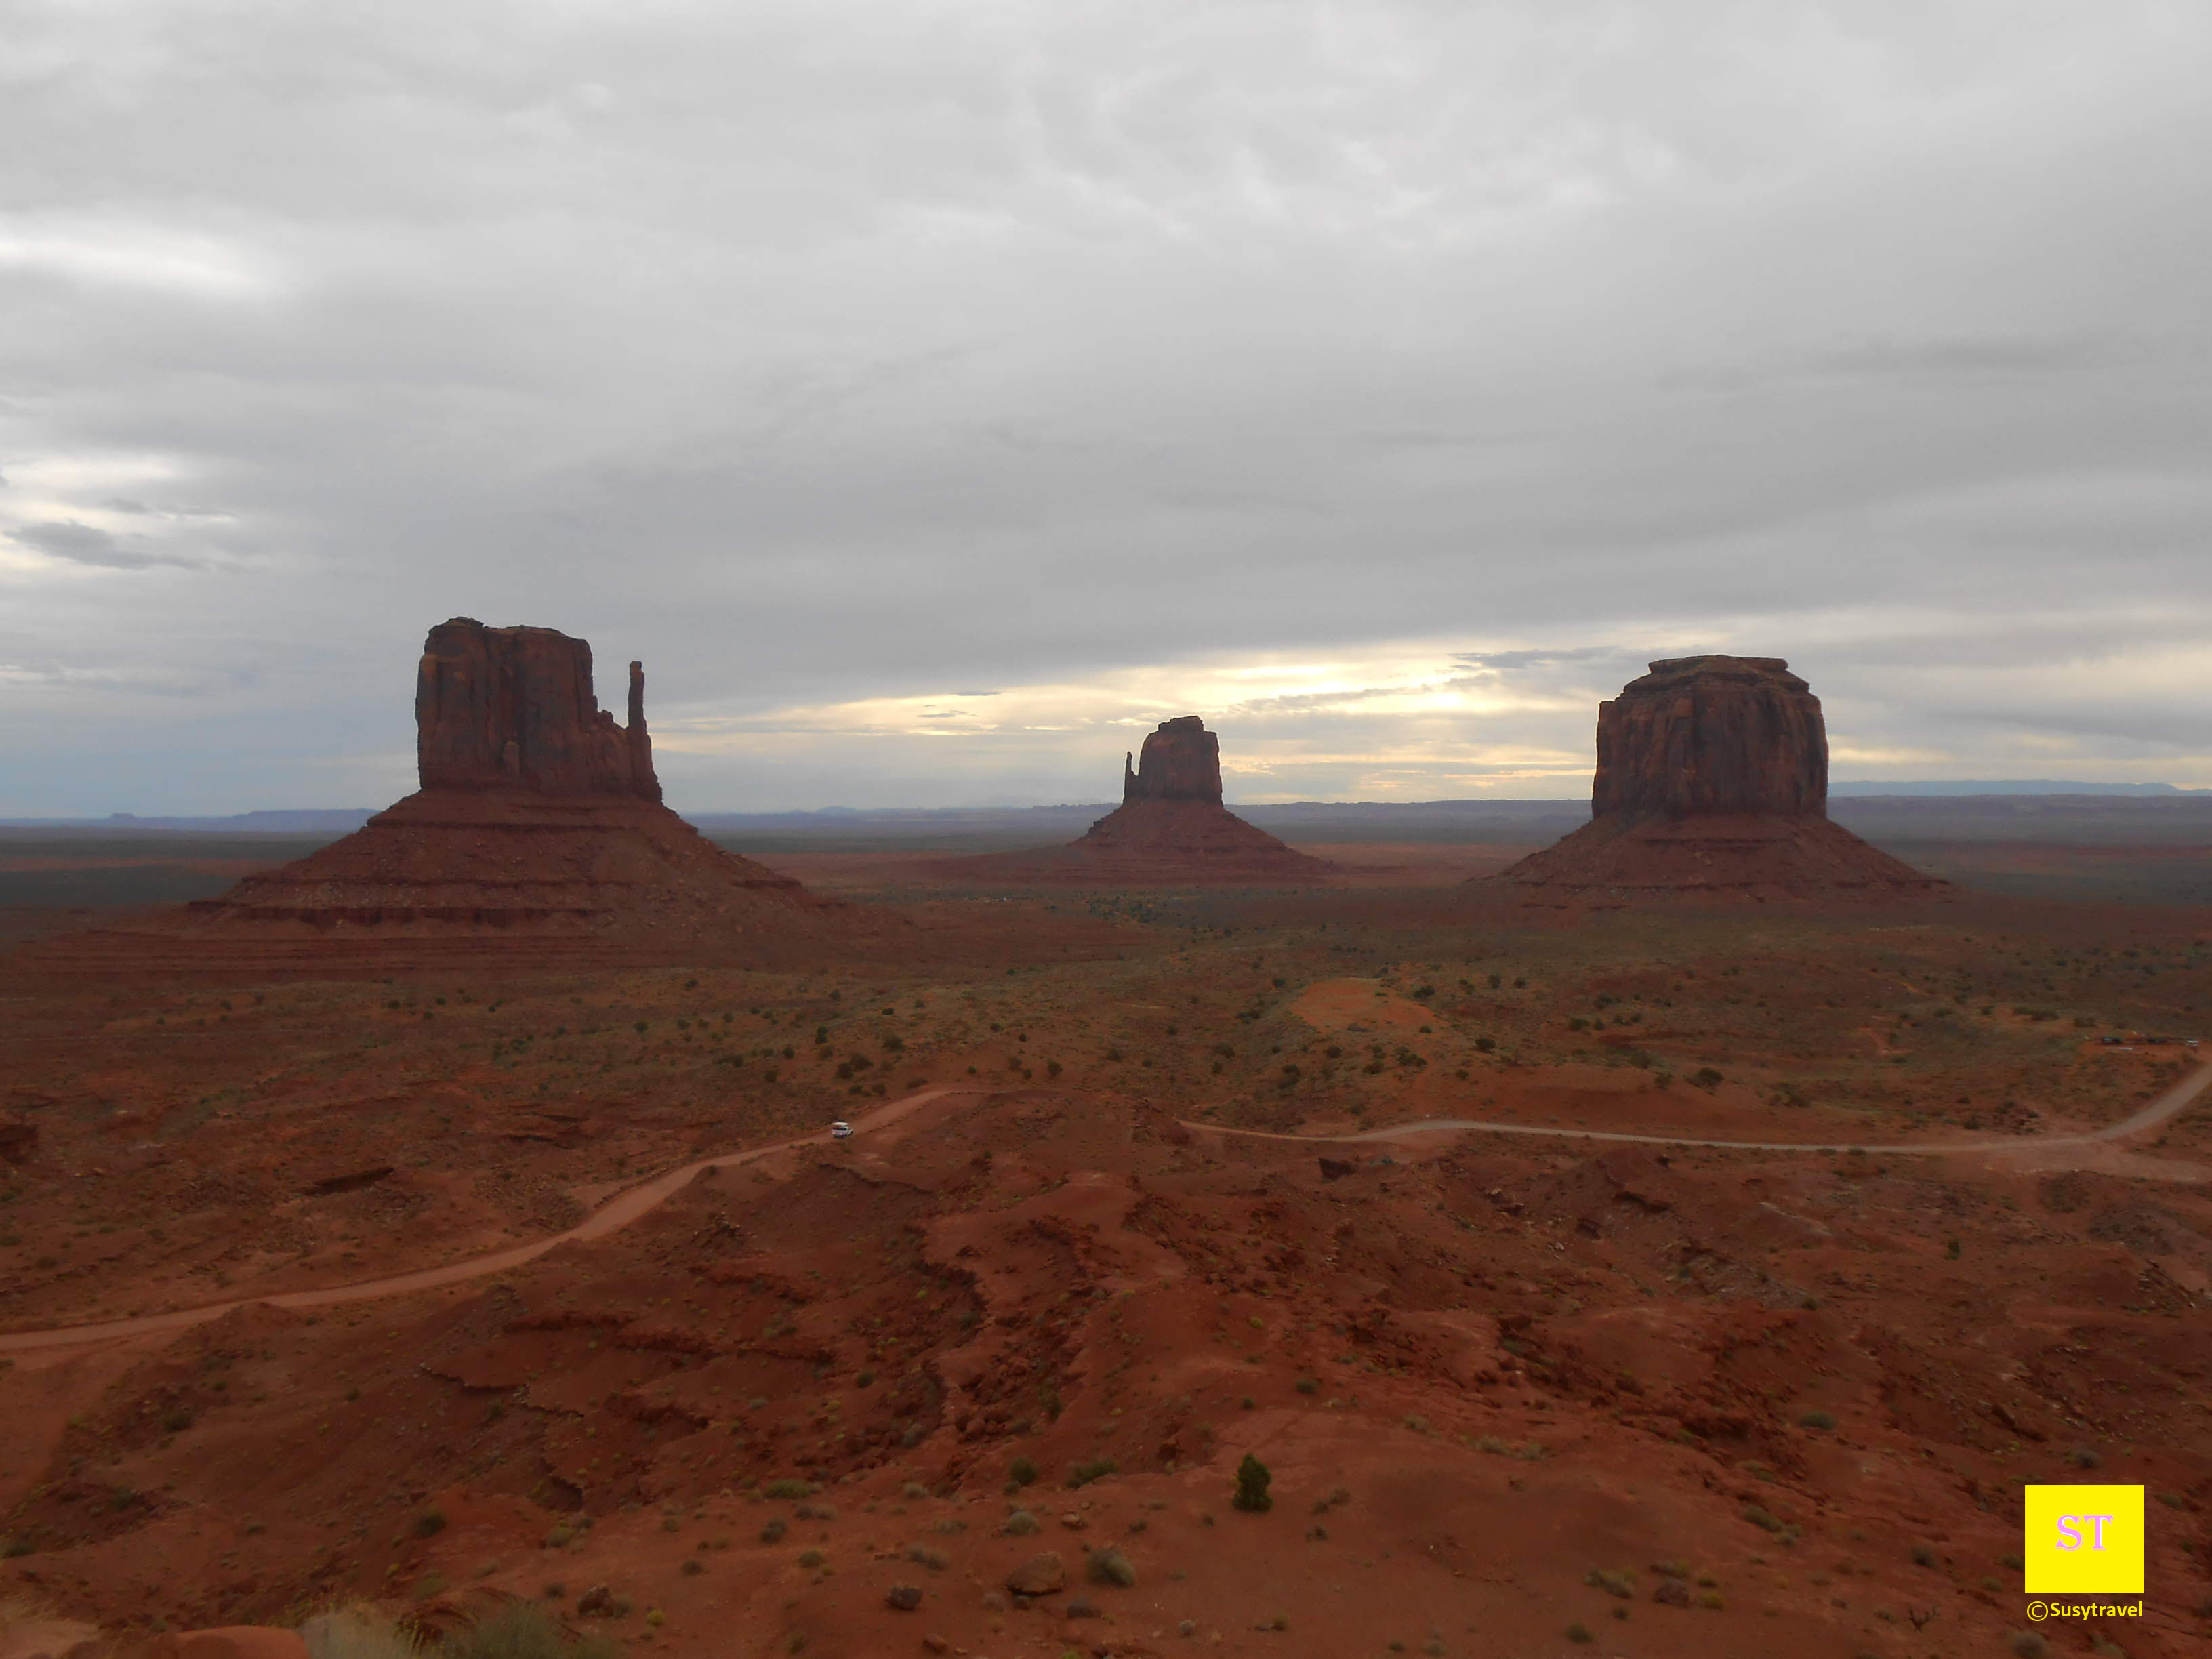 Mittens and Merrick's Butte, monument valley